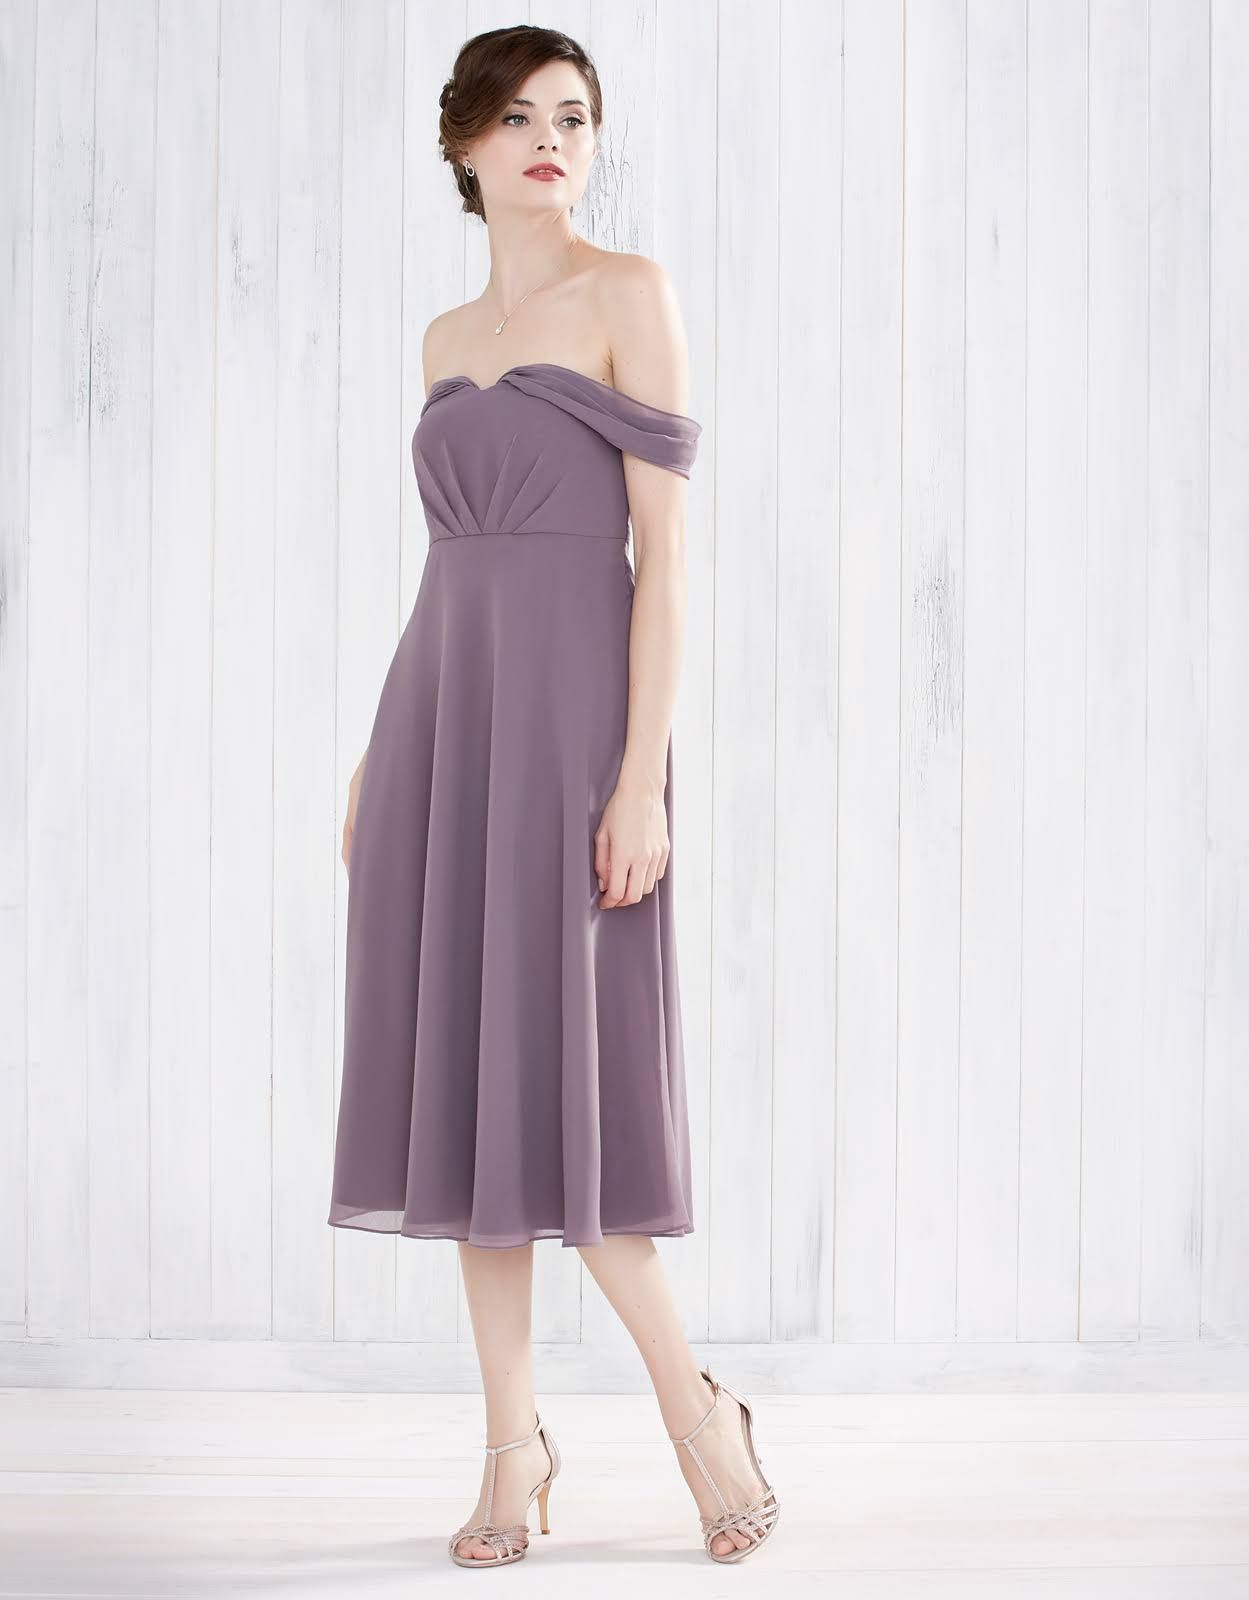 mink bridesmaid dresses uk - Google Search | Momo\'s wedding ...